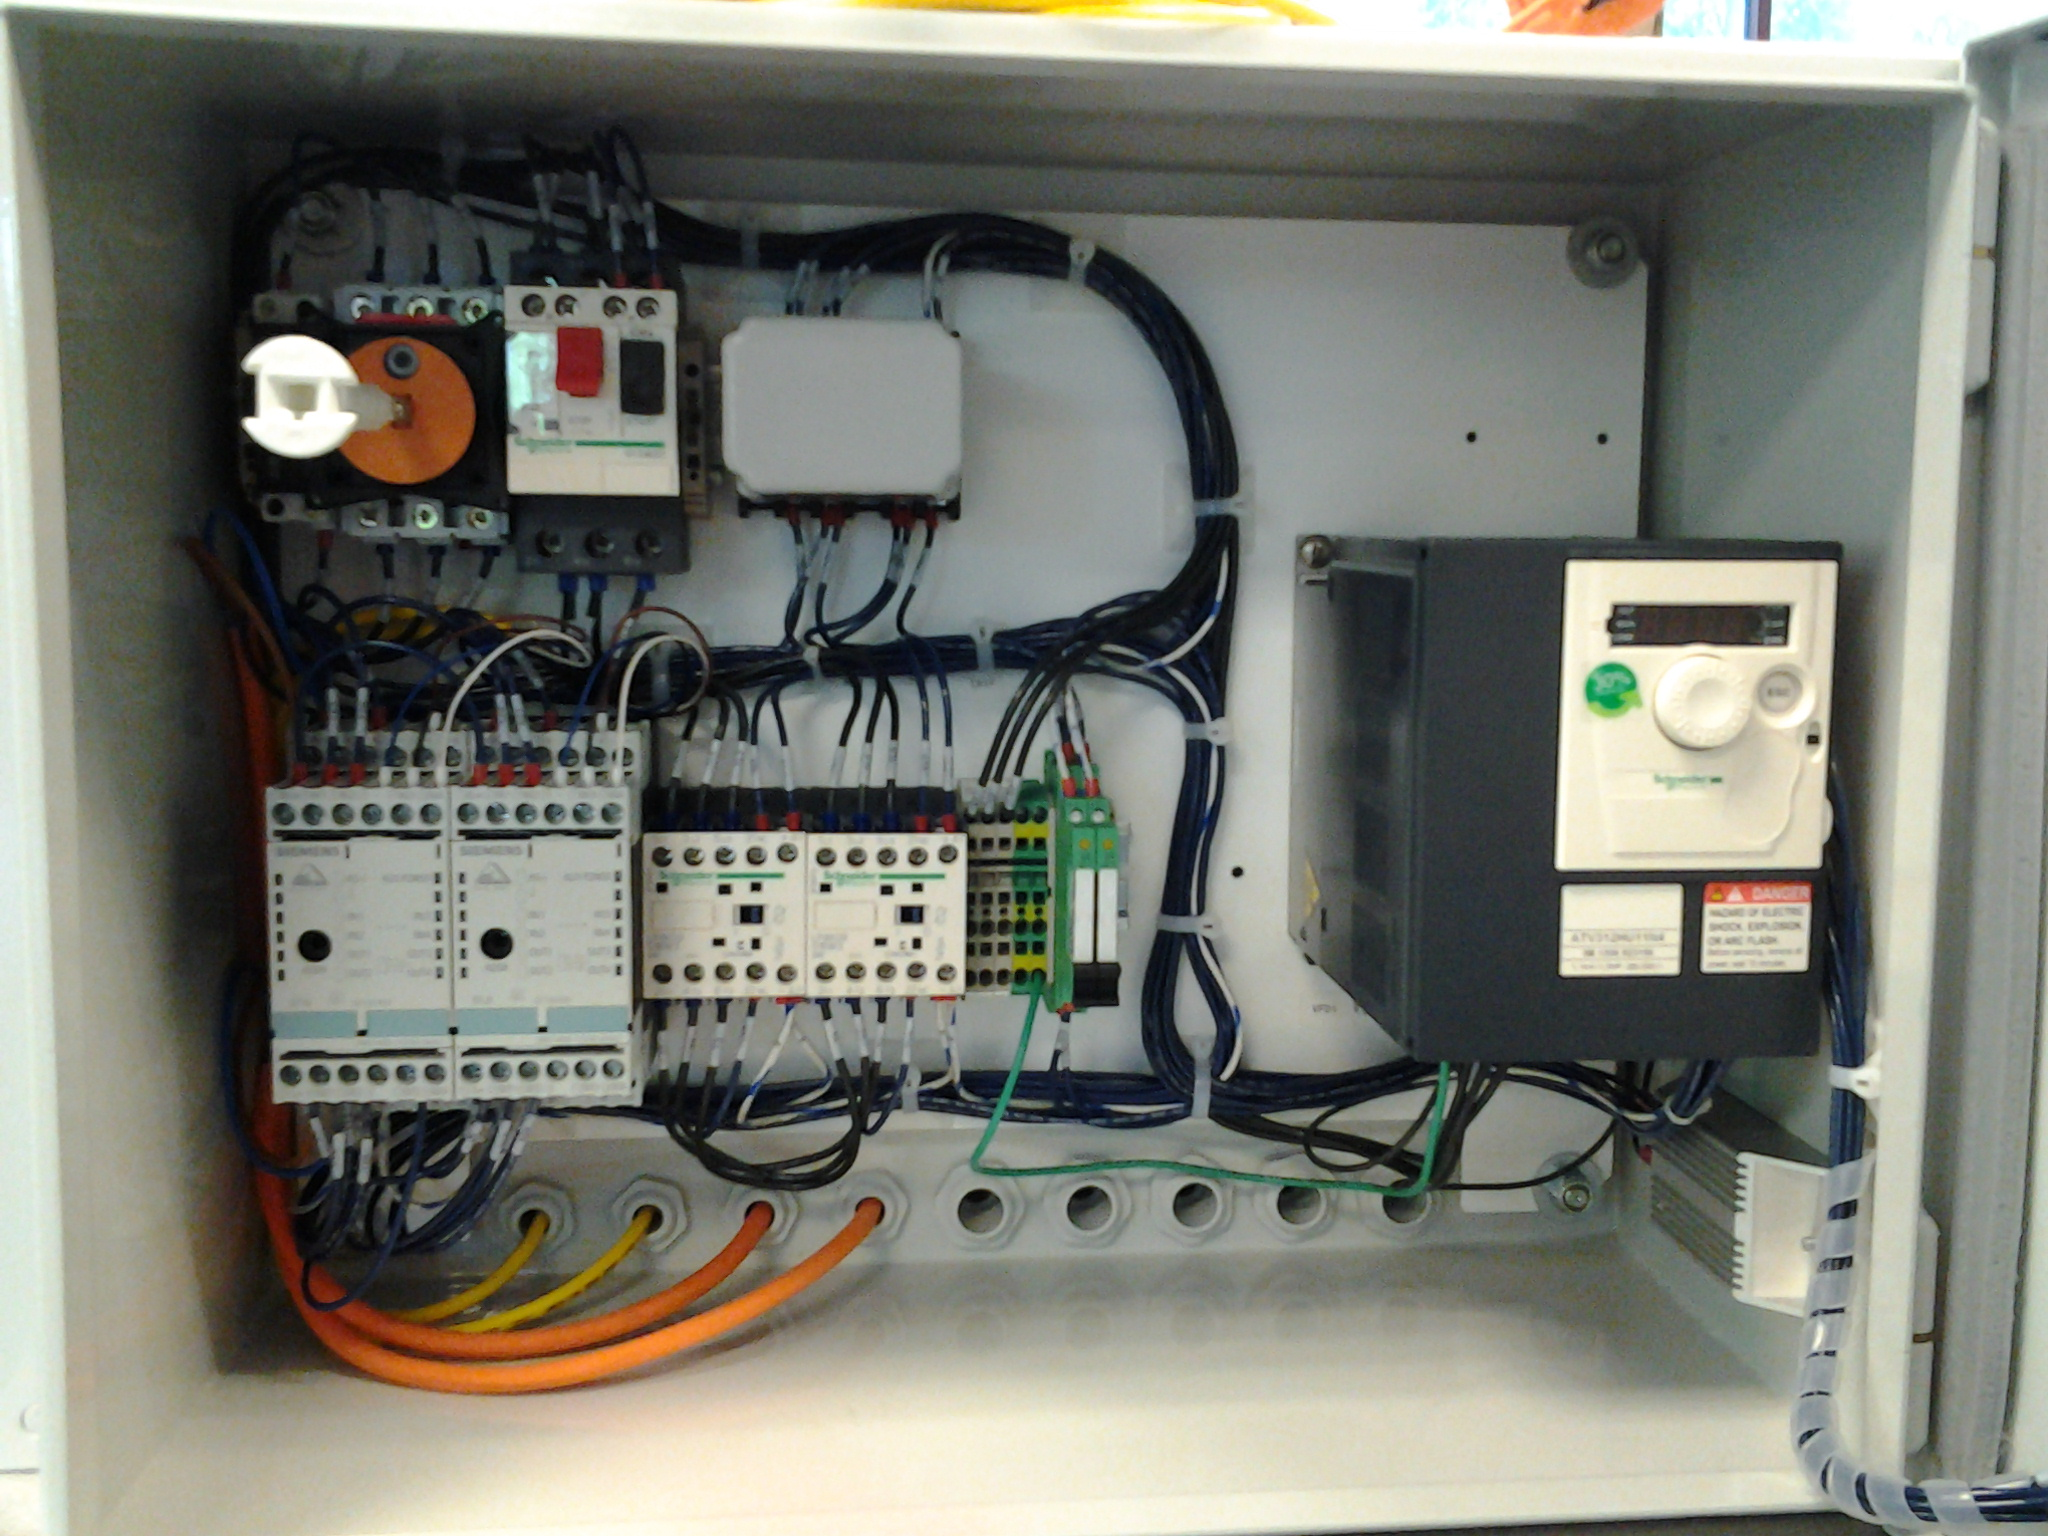 home breaker panel wiring diagram wiring solutions rh rausco com Basic Electrical Wiring Diagrams Circuit Breaker Panel Wiring Diagram